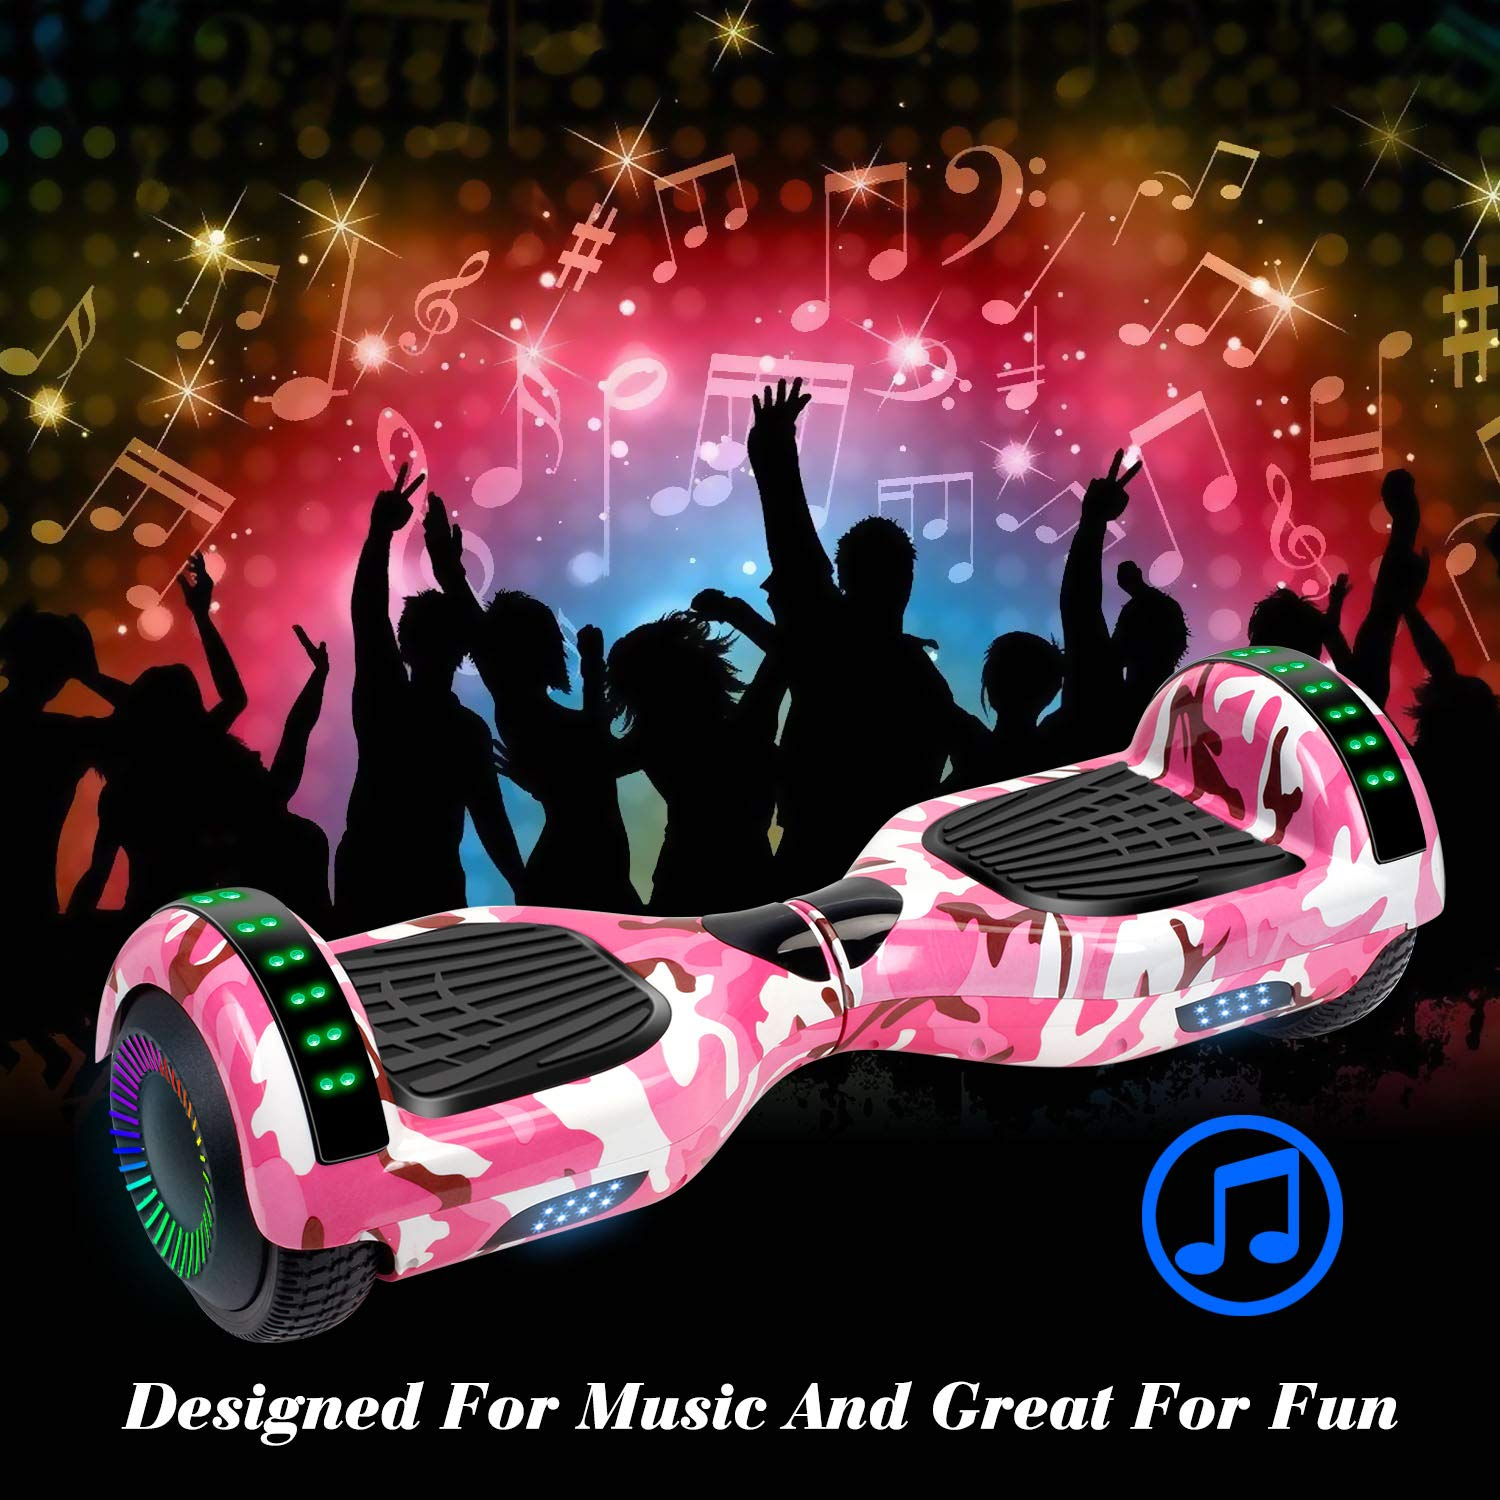 SISIGAD Hoverboard Self Balancing Scooter 6.5'' Two-Wheel Self Balancing Hoverboard with Bluetooth Speaker and LED Lights Electric Scooter for Adult Kids Gift UL 2272 Certified Fun Edition - Pink Camo by SISIGAD (Image #4)